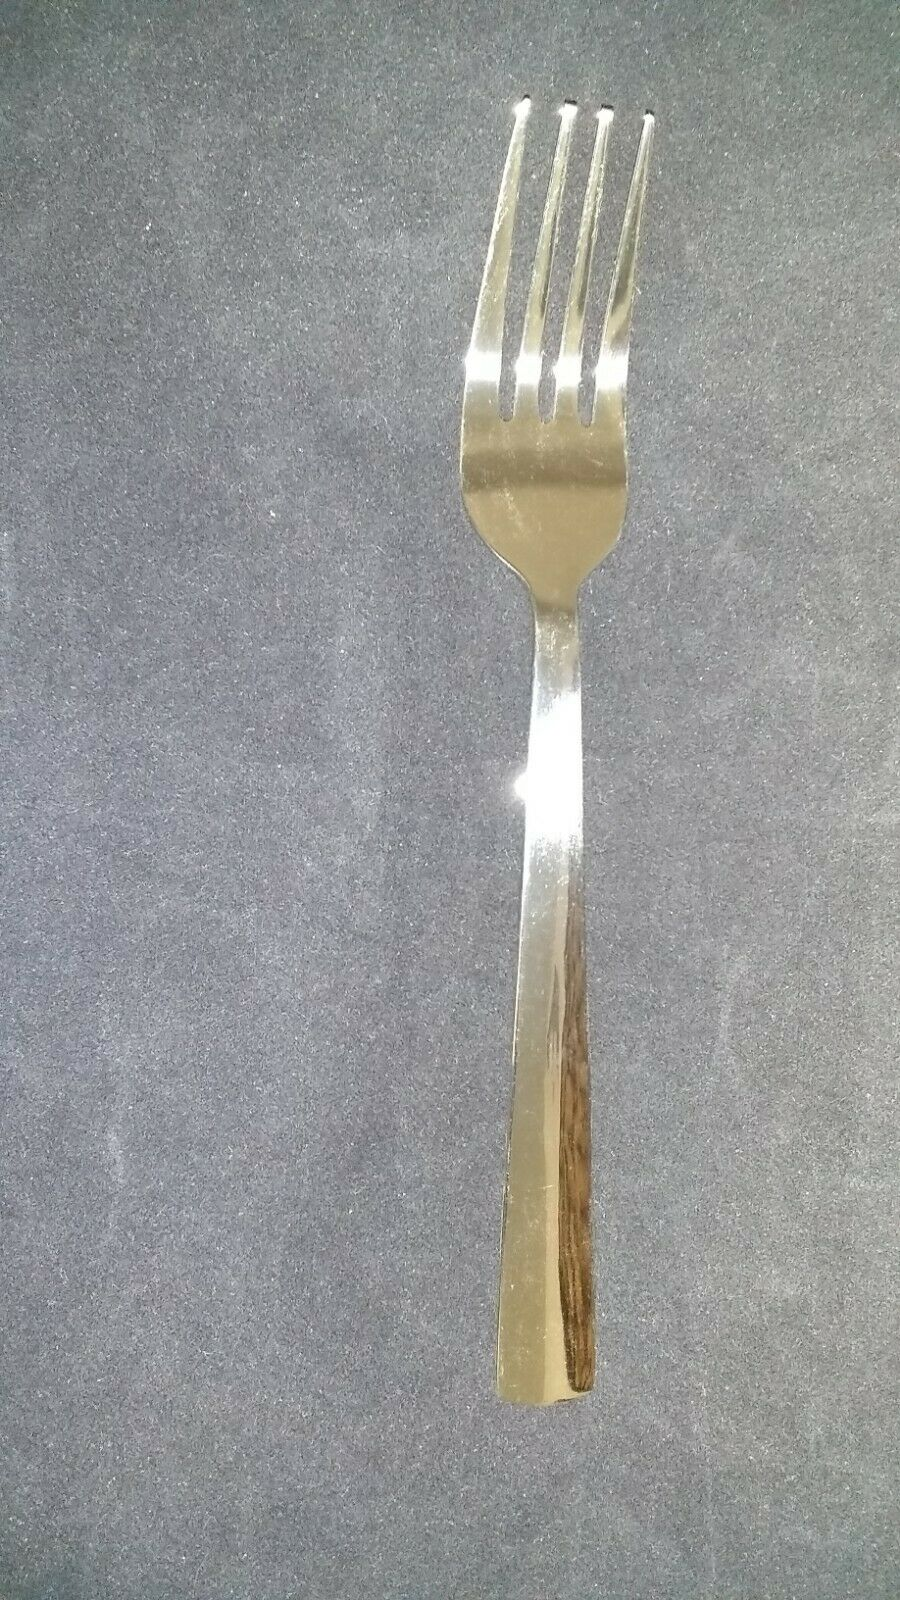 "6 Heavy Dinner FORKS  Stainless Steel 7"" long by3/4 inch Wide Great Quality Unbranded Fork - фотография #4"